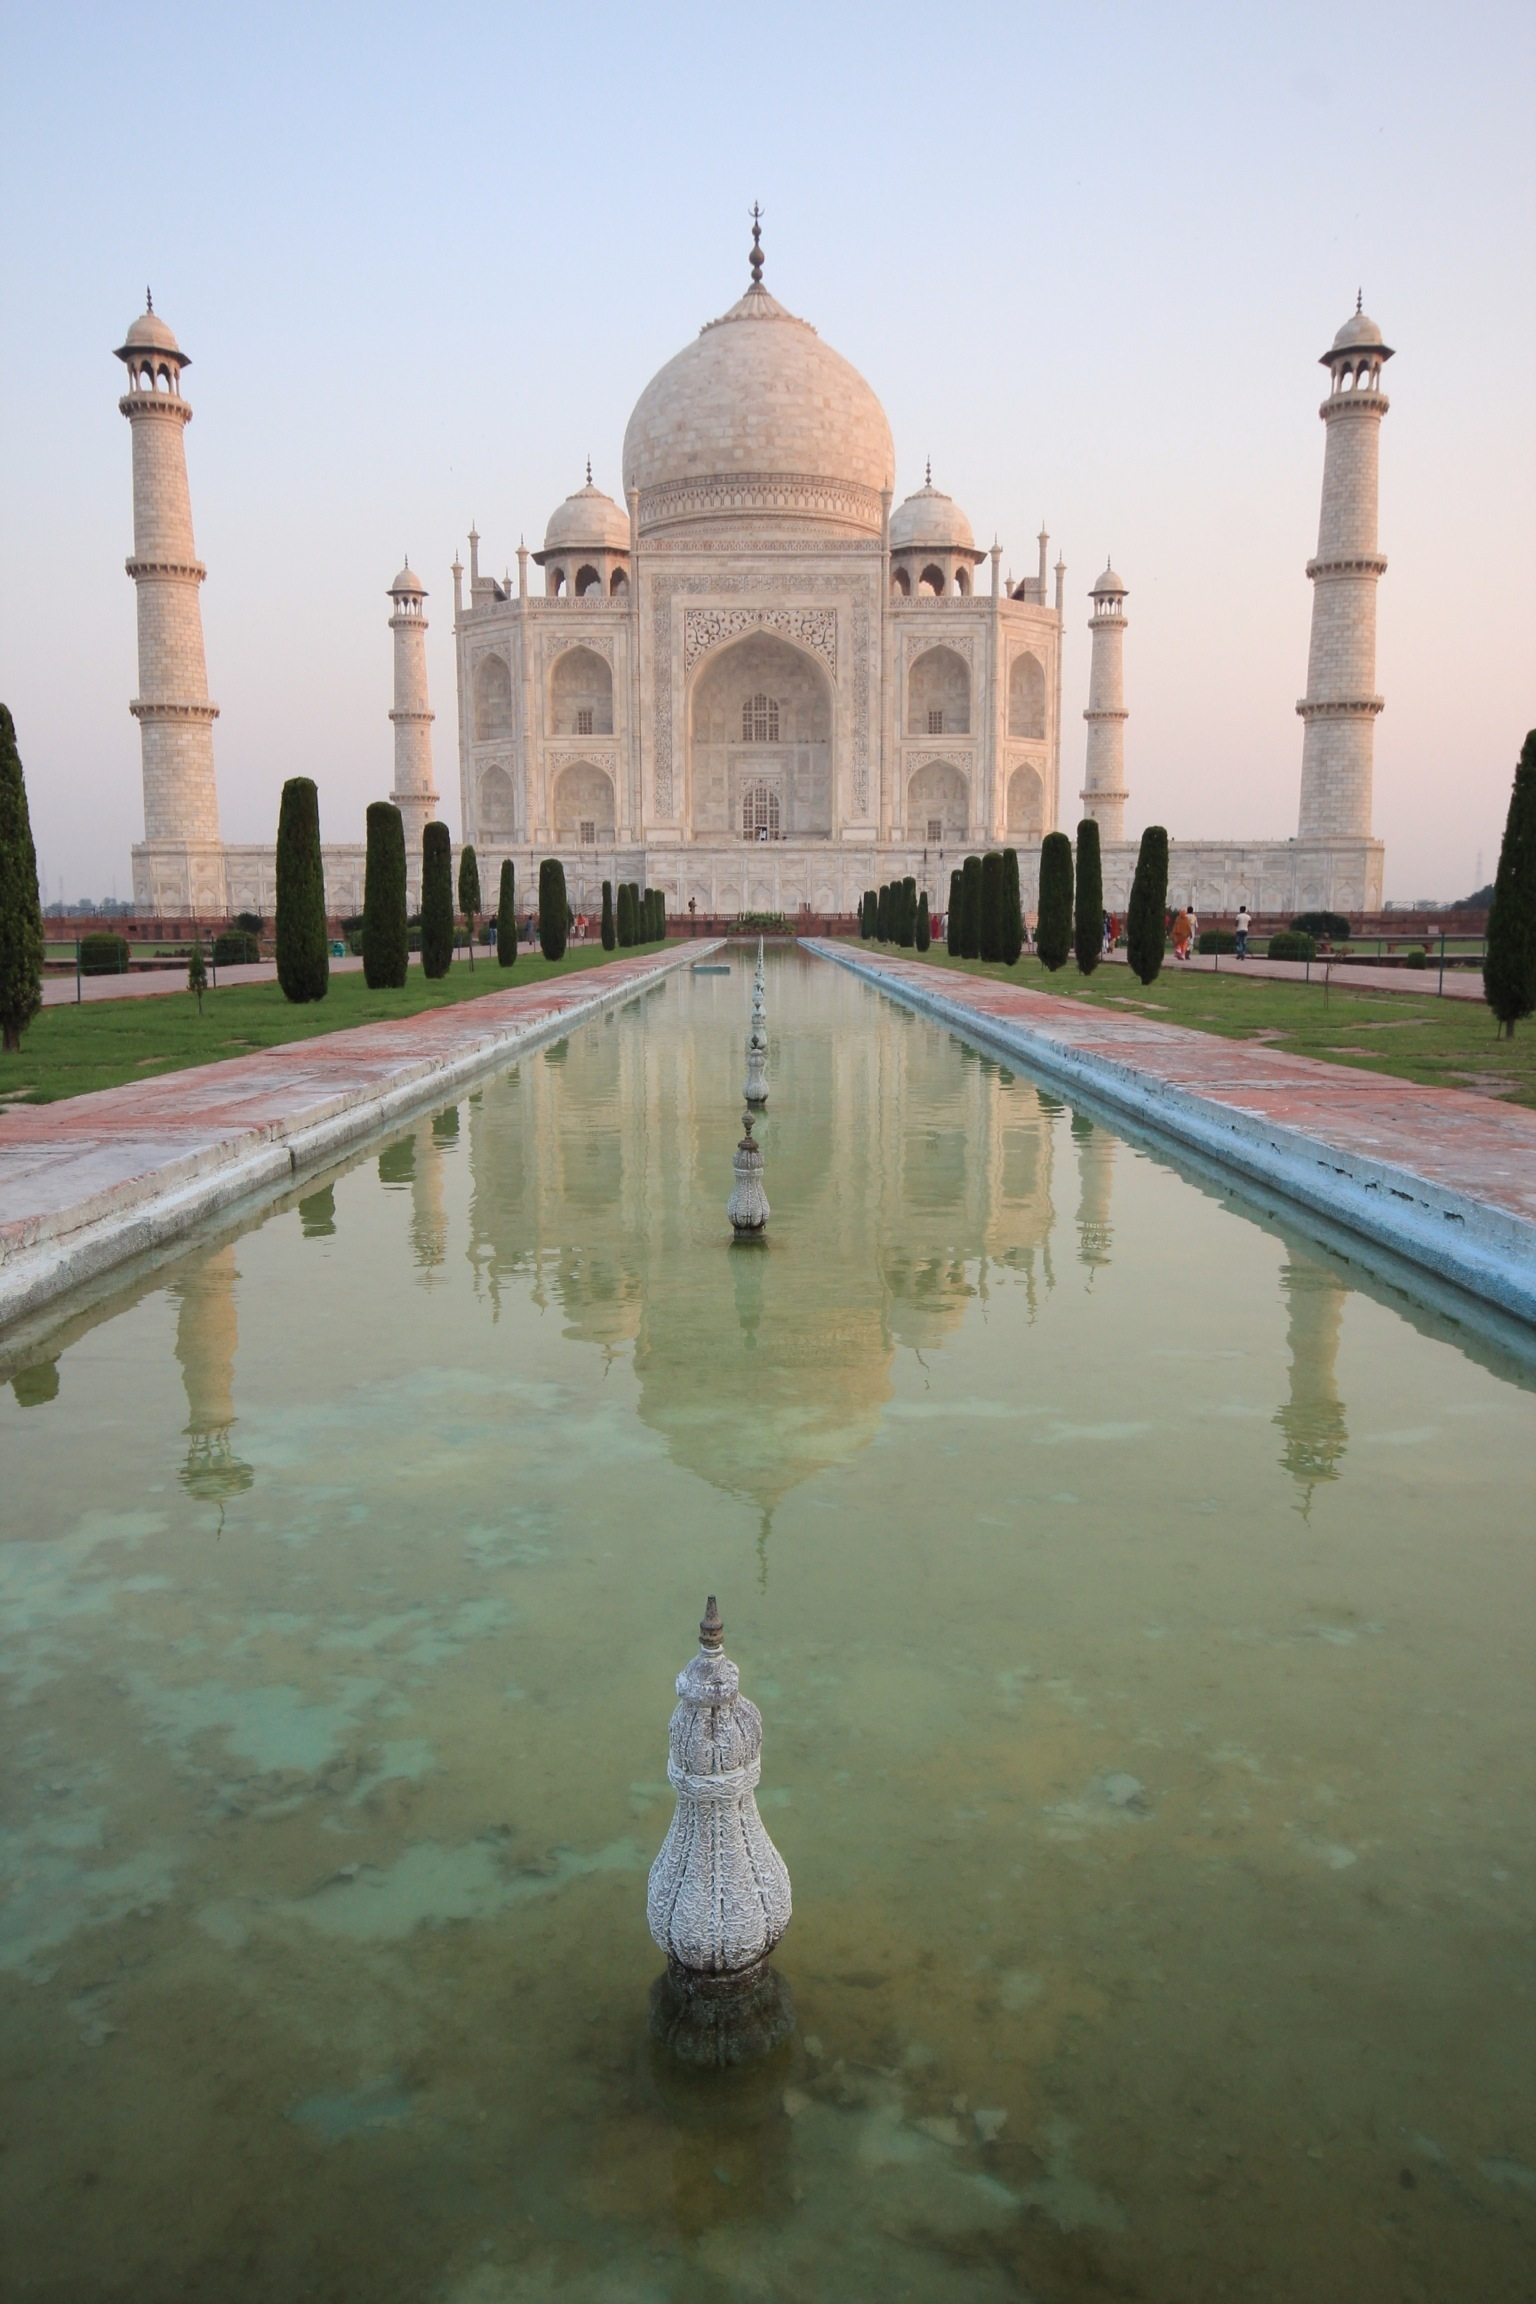 essay on taj mahal in english for kids Short essay on taj mahal for kids english language for short kids hasn't caught up with a number of commentators have also suggested that some good leaders.